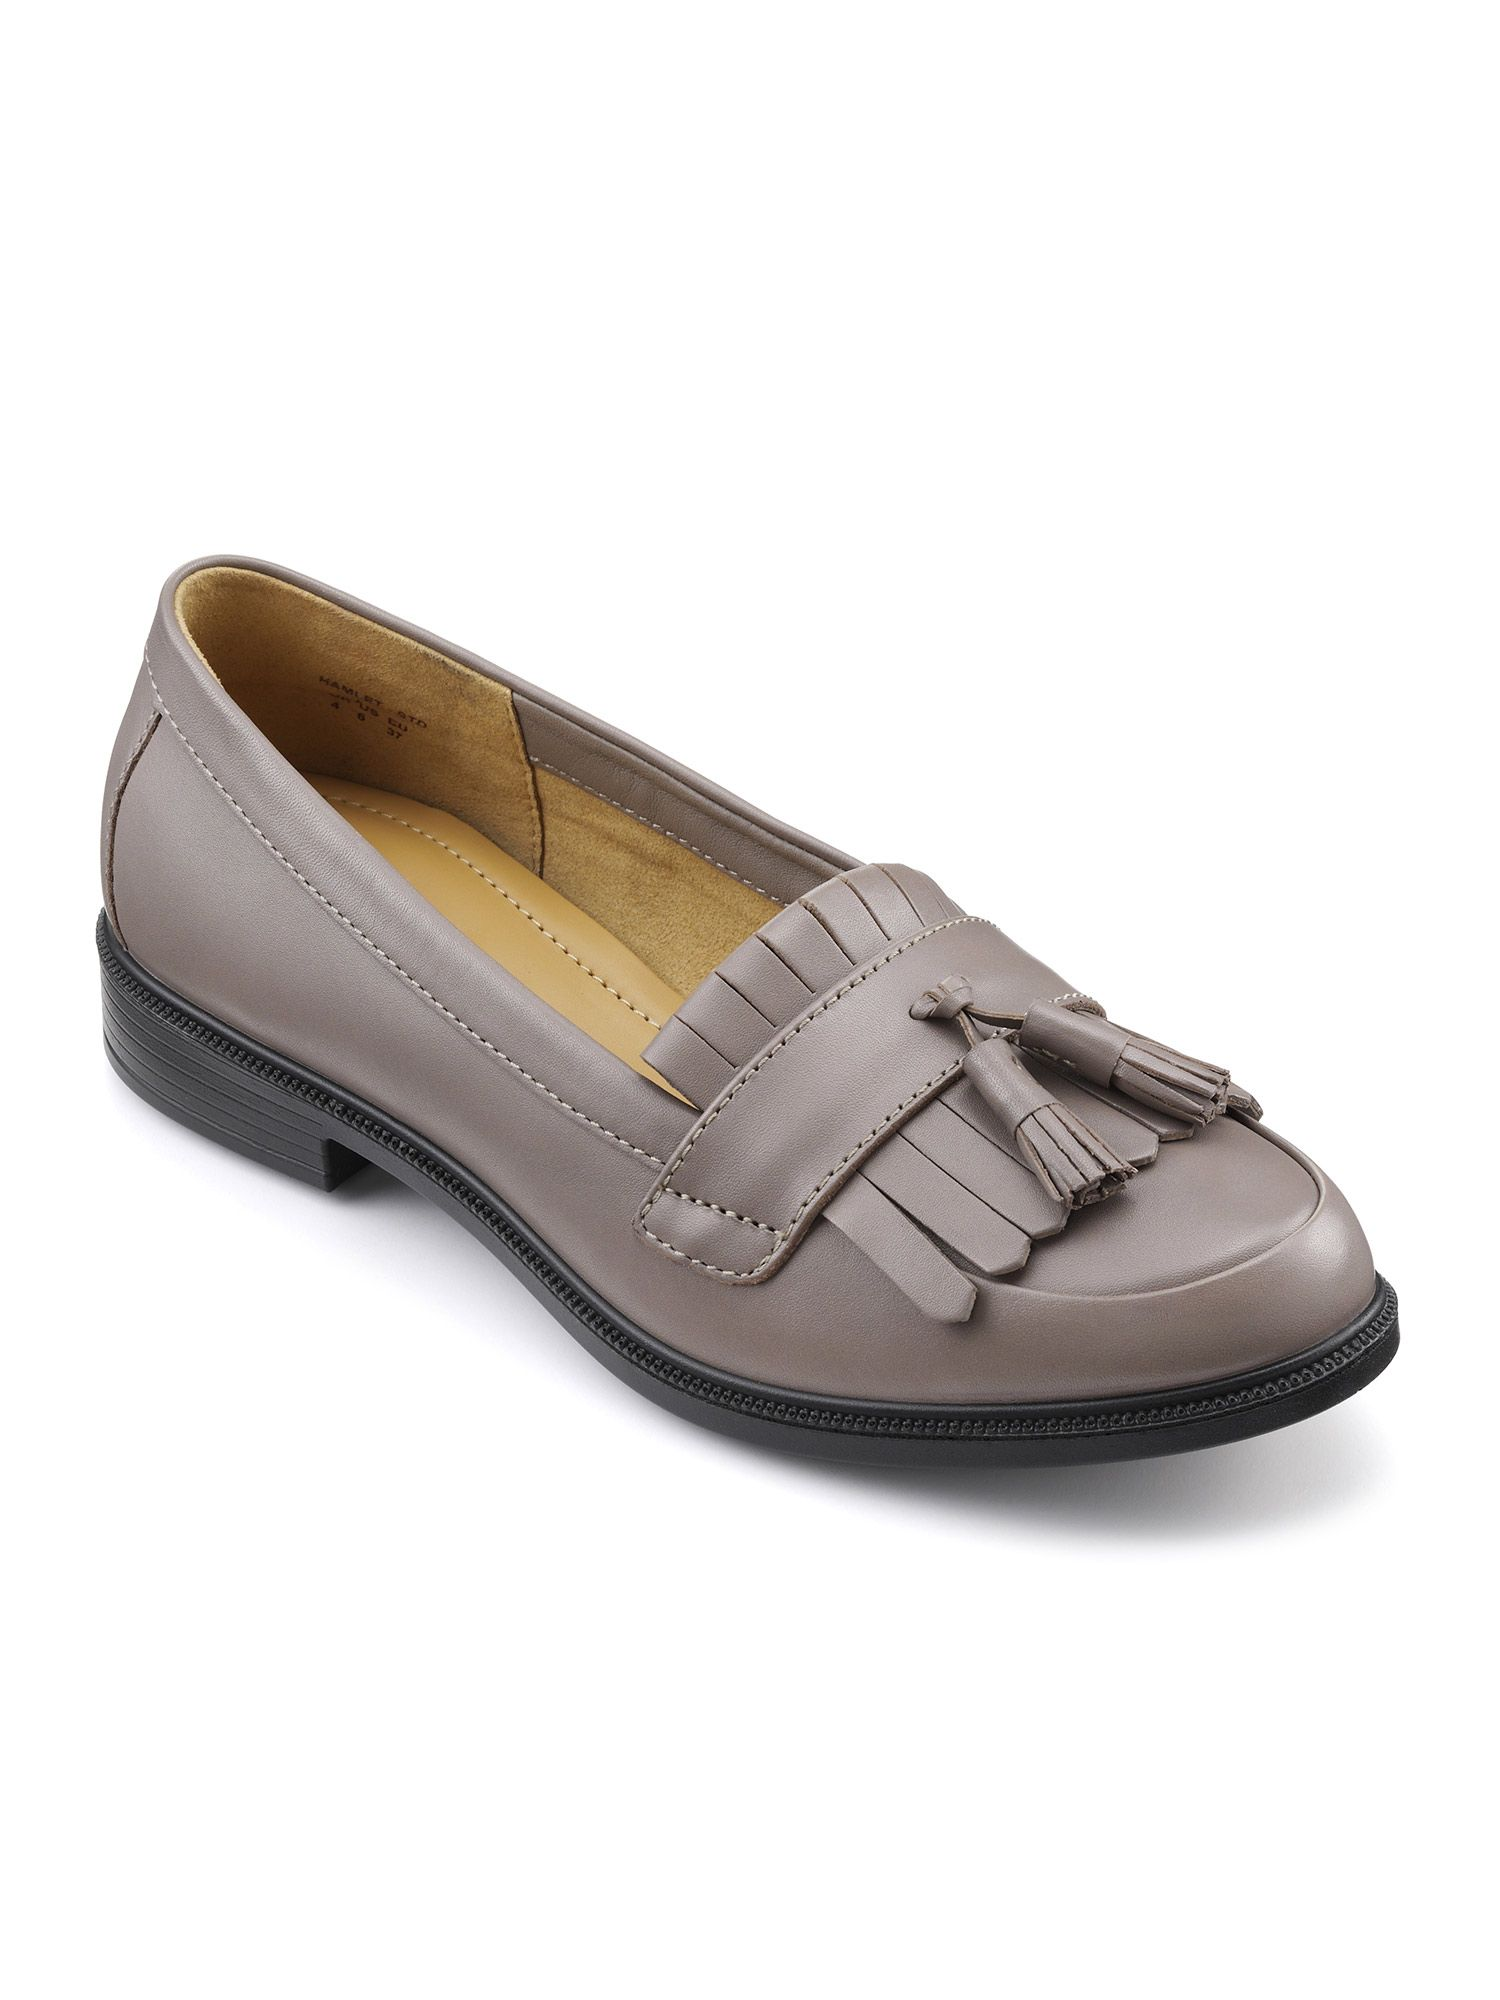 Hotter Hamlet Ladies Lightweight Loafer Shoe, Flint